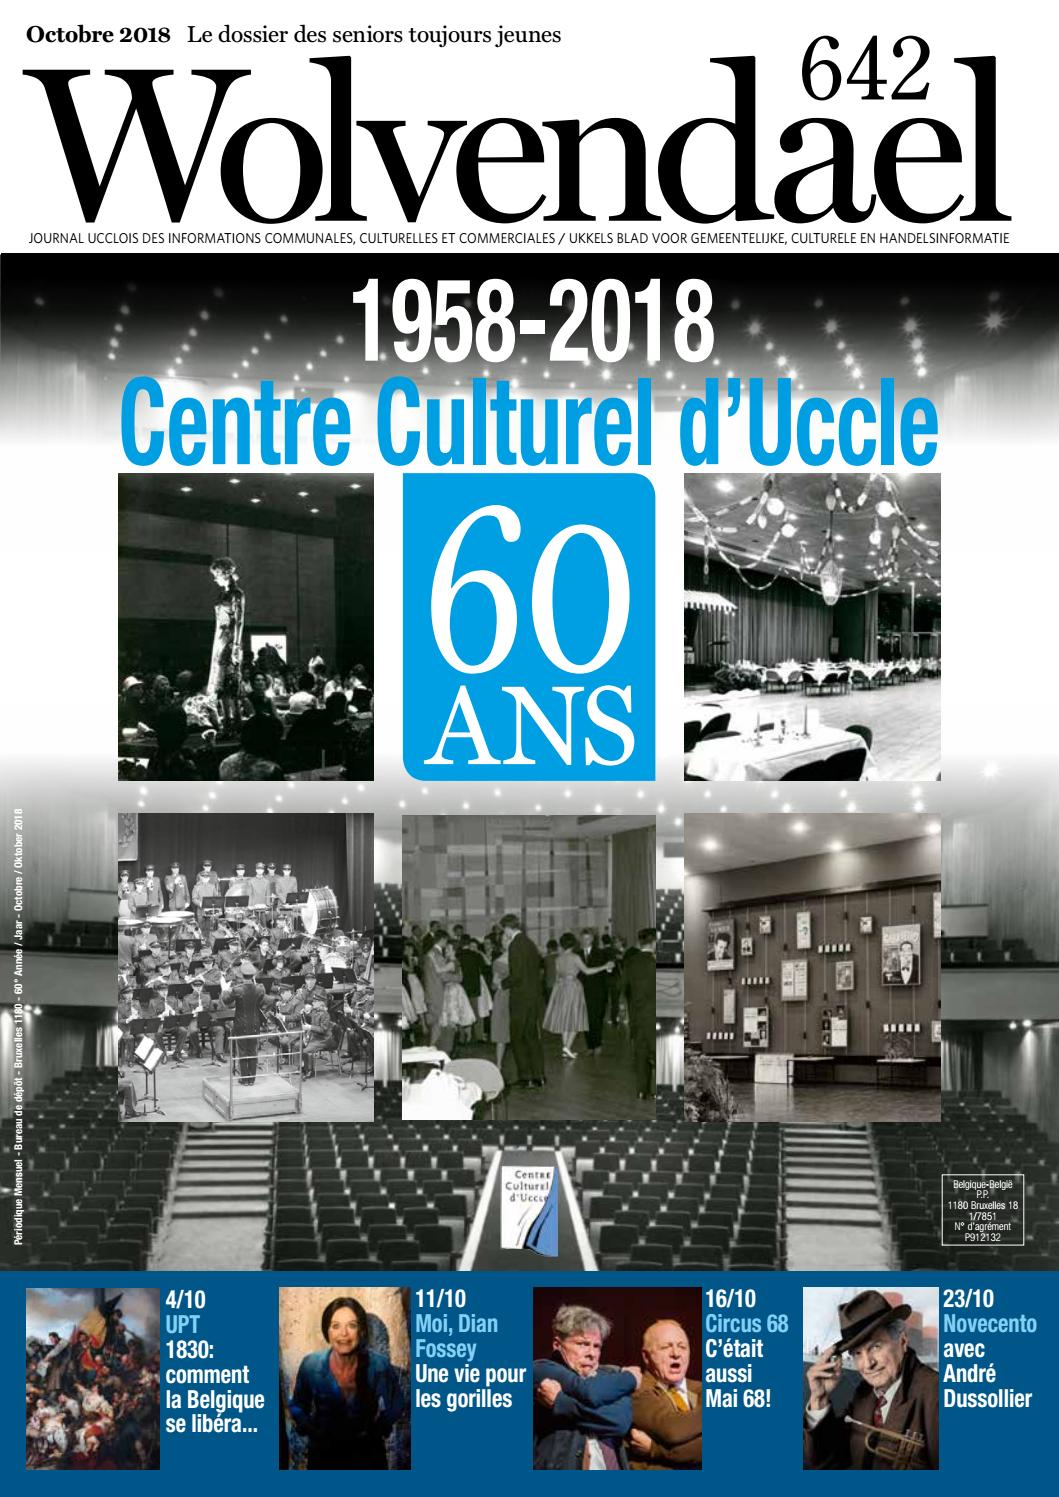 Wolvendael magazine n° 642 octobre 2018 by Centre Culturel d'Uccle - issuu